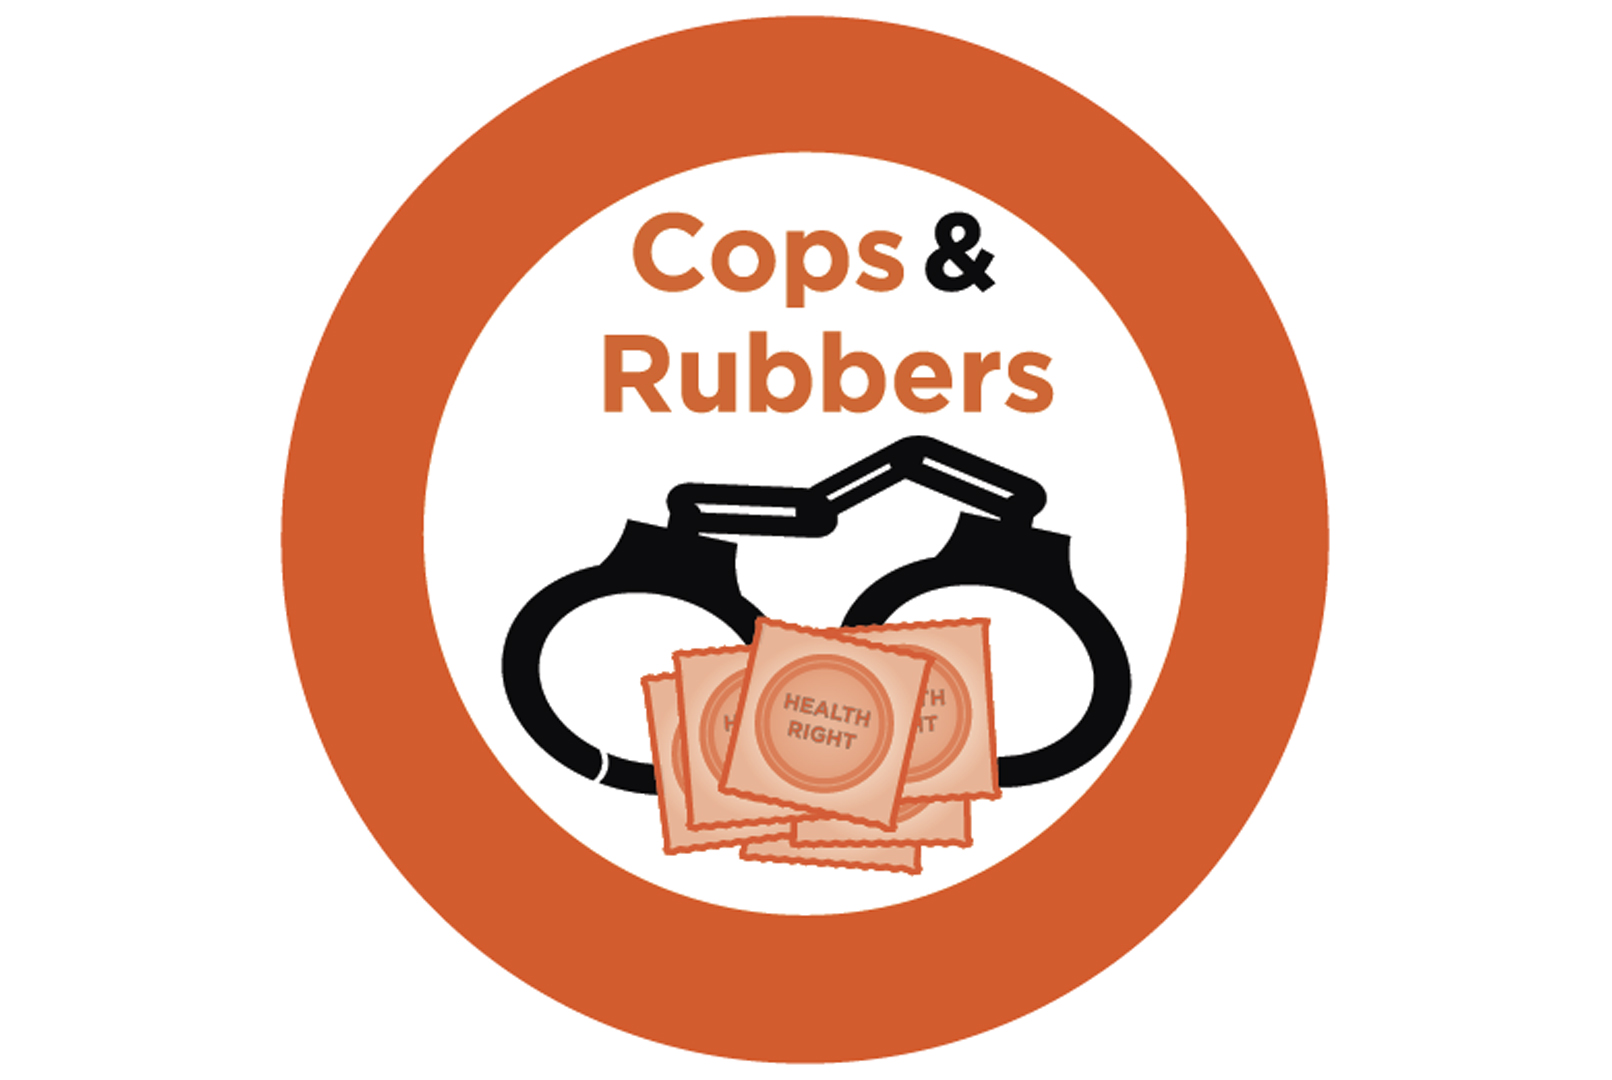 ©2016, Lien Tran, Cops and Rubbers